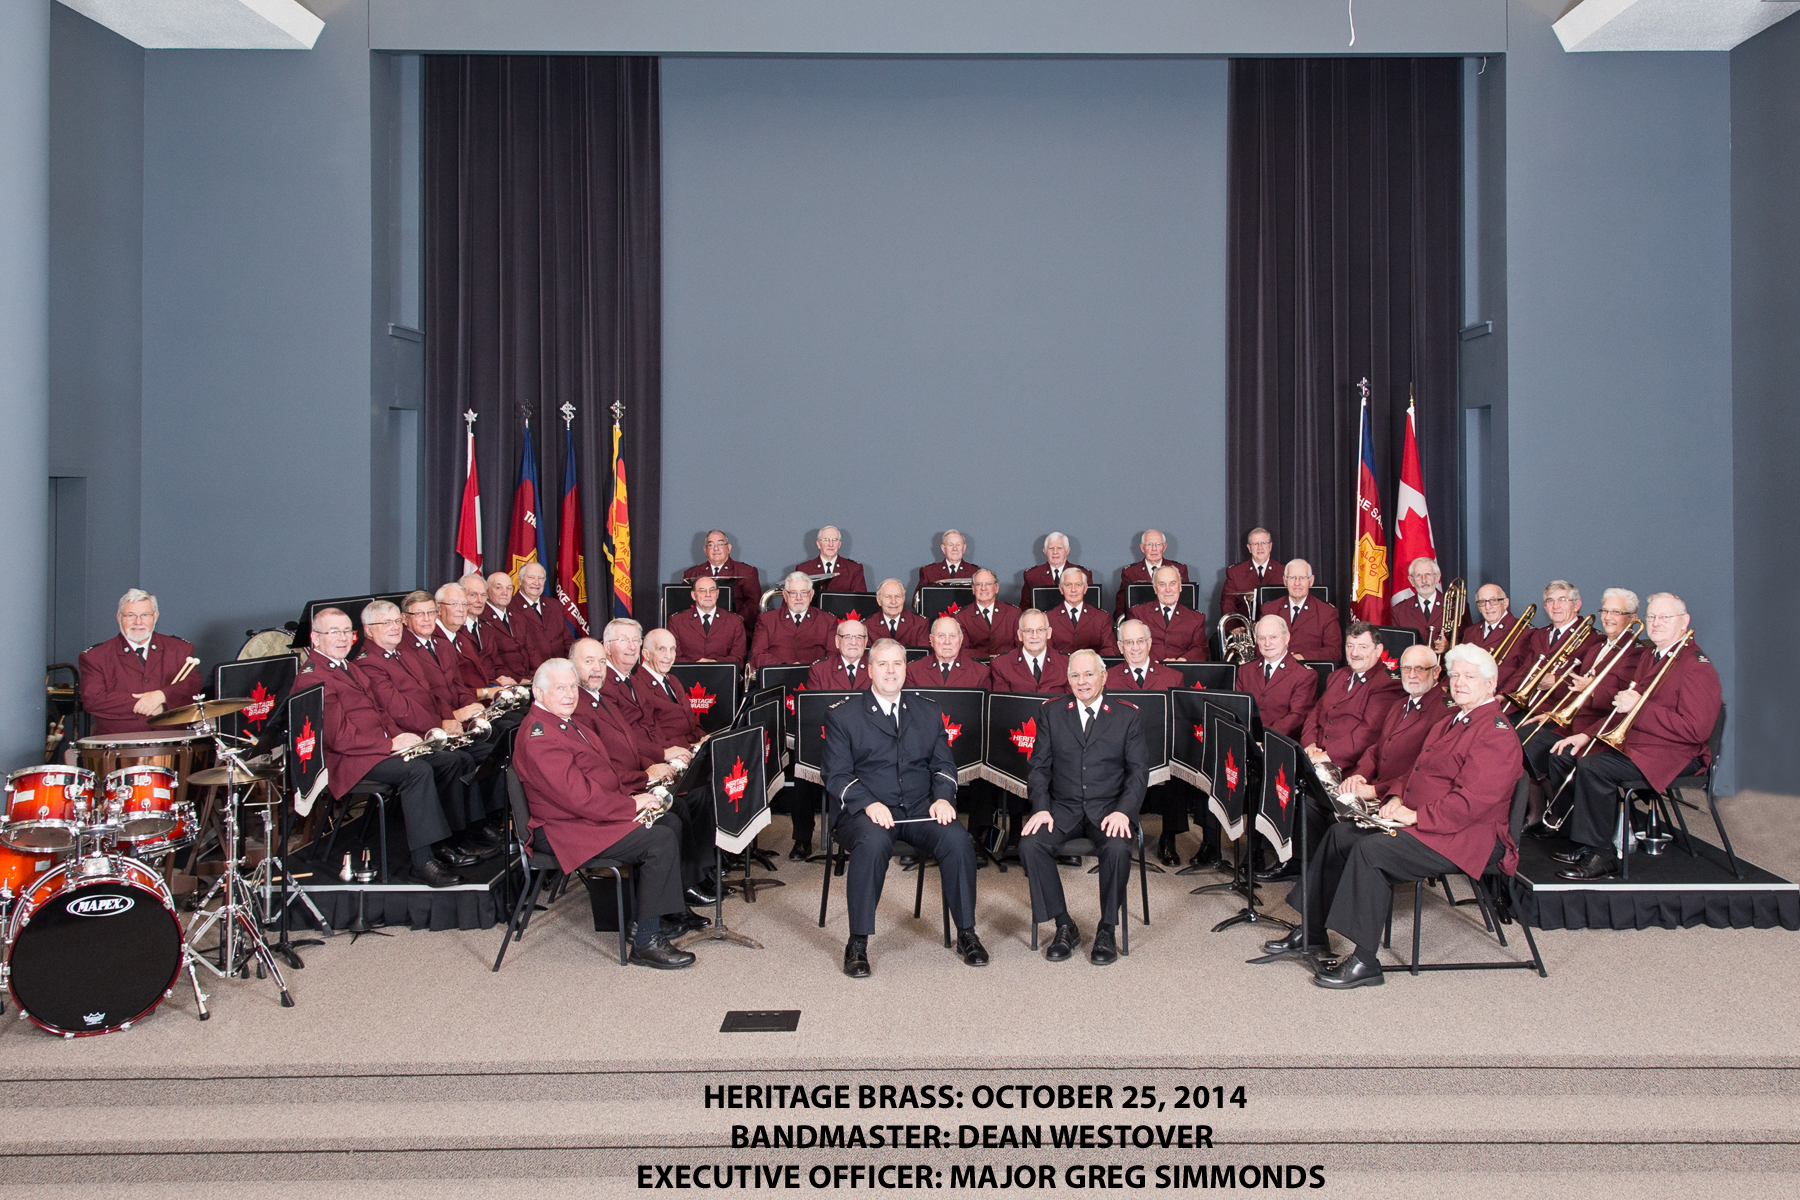 HERITAGE BRASS ANNUAL CONCERT 2014